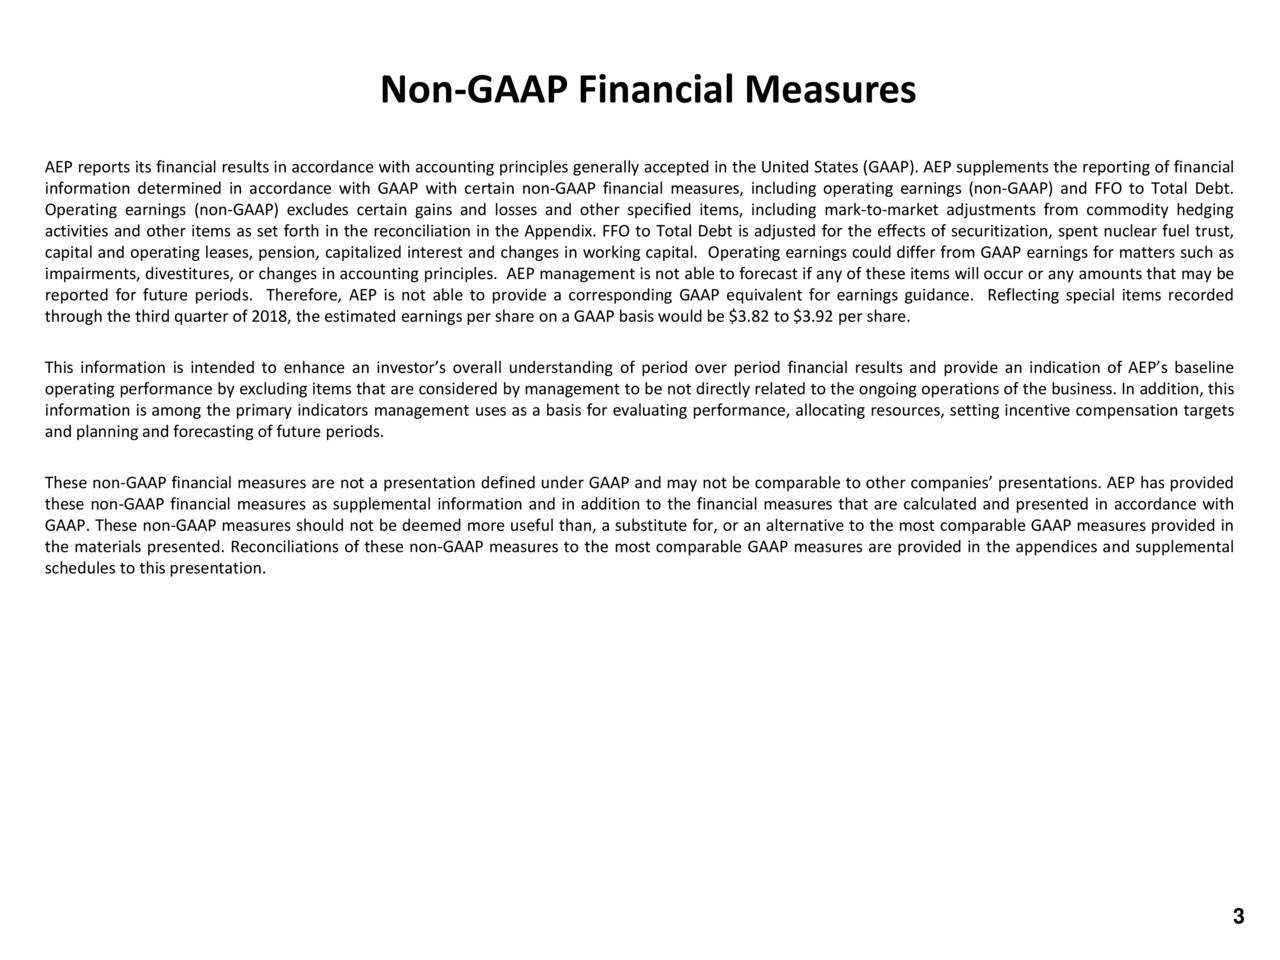 AEP reports its financial results in accordance with accounting principles generally accepted in the United States (GAAP). AEP supplements the reporting of financial information determined in accordance with GAAP with certain non-GAAP financial measures, including operating earnings (non-GAAP) and FFO to Total Debt. Operating earnings (non-GAAP) excludes certain gains and losses and other specified items, including mark-to-market adjustments from commodity hedging activities and other items as set forth in the reconciliation in the Appendix. FFO to Total Debt is adjusted for the effects of securitization, spent nuclear fuel trust, capital and operating leases, pension, capitalized interest and changes in working capital. Operating earnings could differ from GAAP earnings for matters such as impairments, divestitures, or changes in accounting principles. AEP management is not able to forecast if any of these items will occur or any amounts that may be reported for future periods. Therefore, AEP is not able to provide a corresponding GAAP equivalent for earnings guidance. Reflecting special items recorded through the third quarter of 2018, the estimated earnings per share on a GAAP basis would be $3.82 to $3.92 per share. This information is intended to enhance an investor's overall understanding of period over period financial results and provide an indication of AEP's baseline operating performance by excluding items that are considered by management to be not directly related to the ongoing operations of the business. In addition, this information is among the primary indicators management uses as a basis for evaluating performance, allocating resources, setting incentive compensation targets and planning and forecasting of future periods. These non-GAAP financial measures are not a presentation defined under GAAP and may not be comparable to other companies' presentations. AEP has provided these non-GAAP financial measures as supplemental information and in addition to the financial measures that are calculated and presented in accordance with GAAP. These non-GAAP measures should not be deemed more useful than, a substitute for, or an alternative to the most comparable GAAP measures provided in the materials presented. Reconciliations of these non-GAAP measures to the most comparable GAAP measures are provided in the appendices and supplemental schedules to this presentation. BetteJo Rozsa Brad Funk Investor Relations Managing Director Director Investor Relations Investor Relations Contacts 614-716-2840 614-716-3162 bjrozsa@aep.com bmfunk@aep.com 3